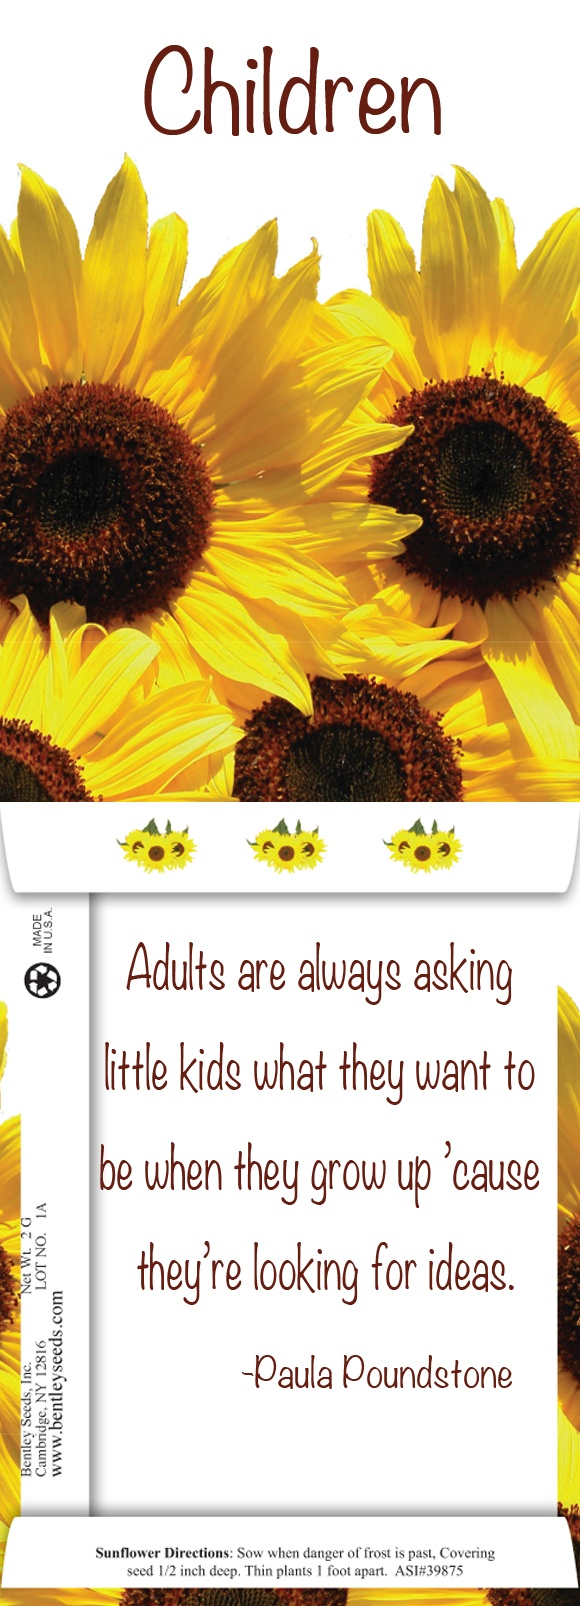 46 best 3 sunflowers 3 images on pinterest sunflowers sunflower seed packets fandeluxe PDF